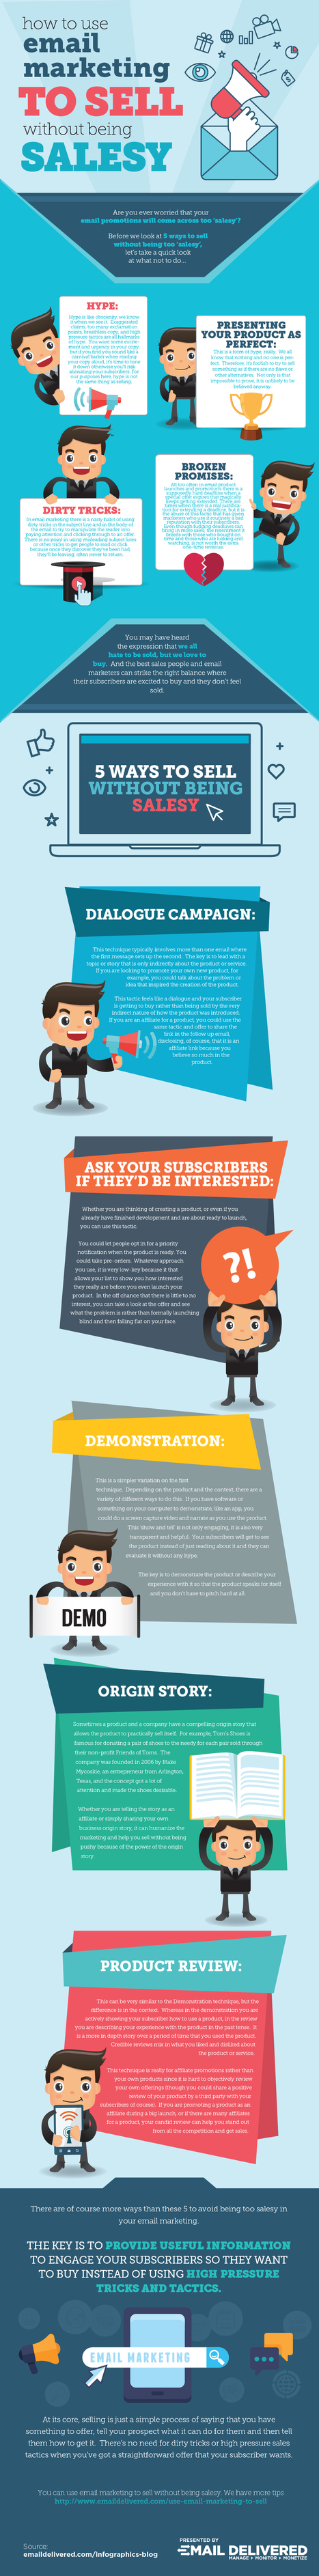 How to Use Email Marketing to Sell Without Being Salesy-Infographic - | Email Delivered | Scoop.it